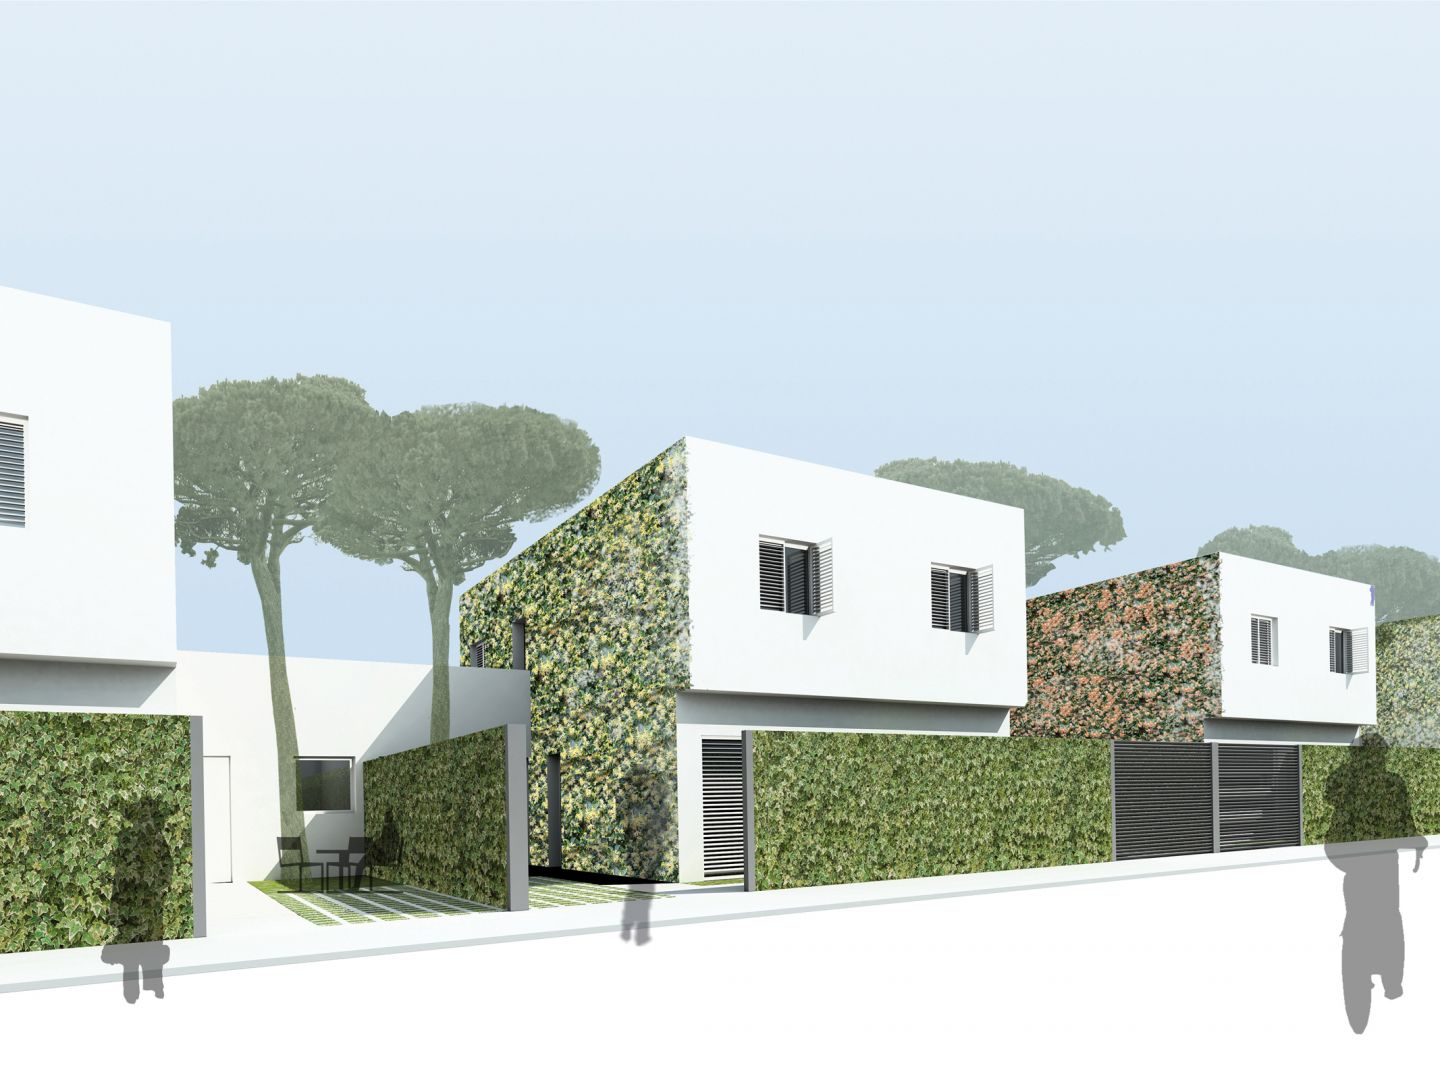 Arquitectura ambiental perfil share the knownledge for Arquitectura y sostenibilidad